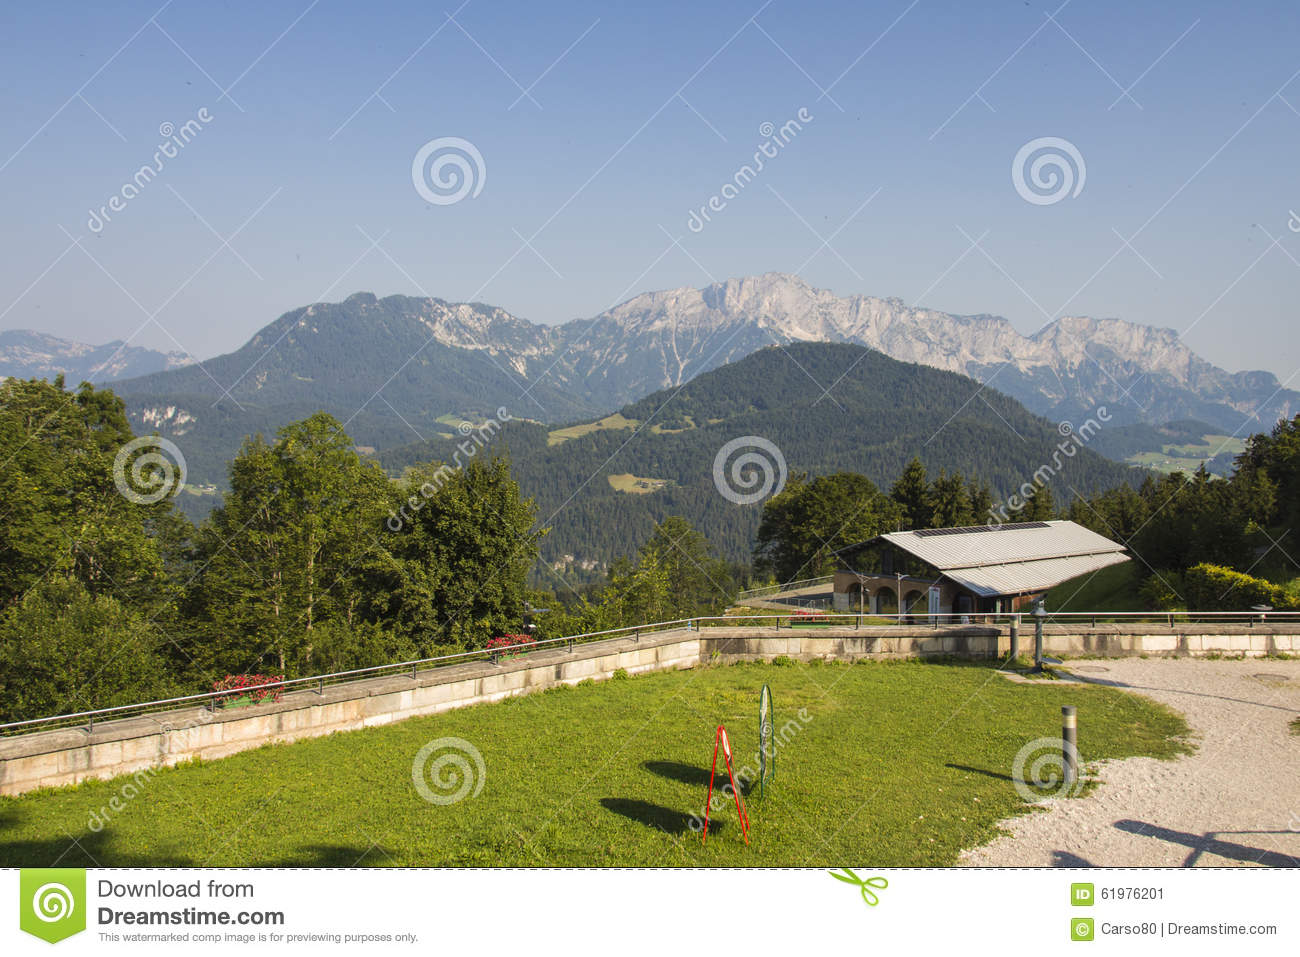 Dokumentation Obersalzberg The Bavarian Alps, Obersalzberg Close To Berchtesgaden In Germany, 2015 Stock Photo ...